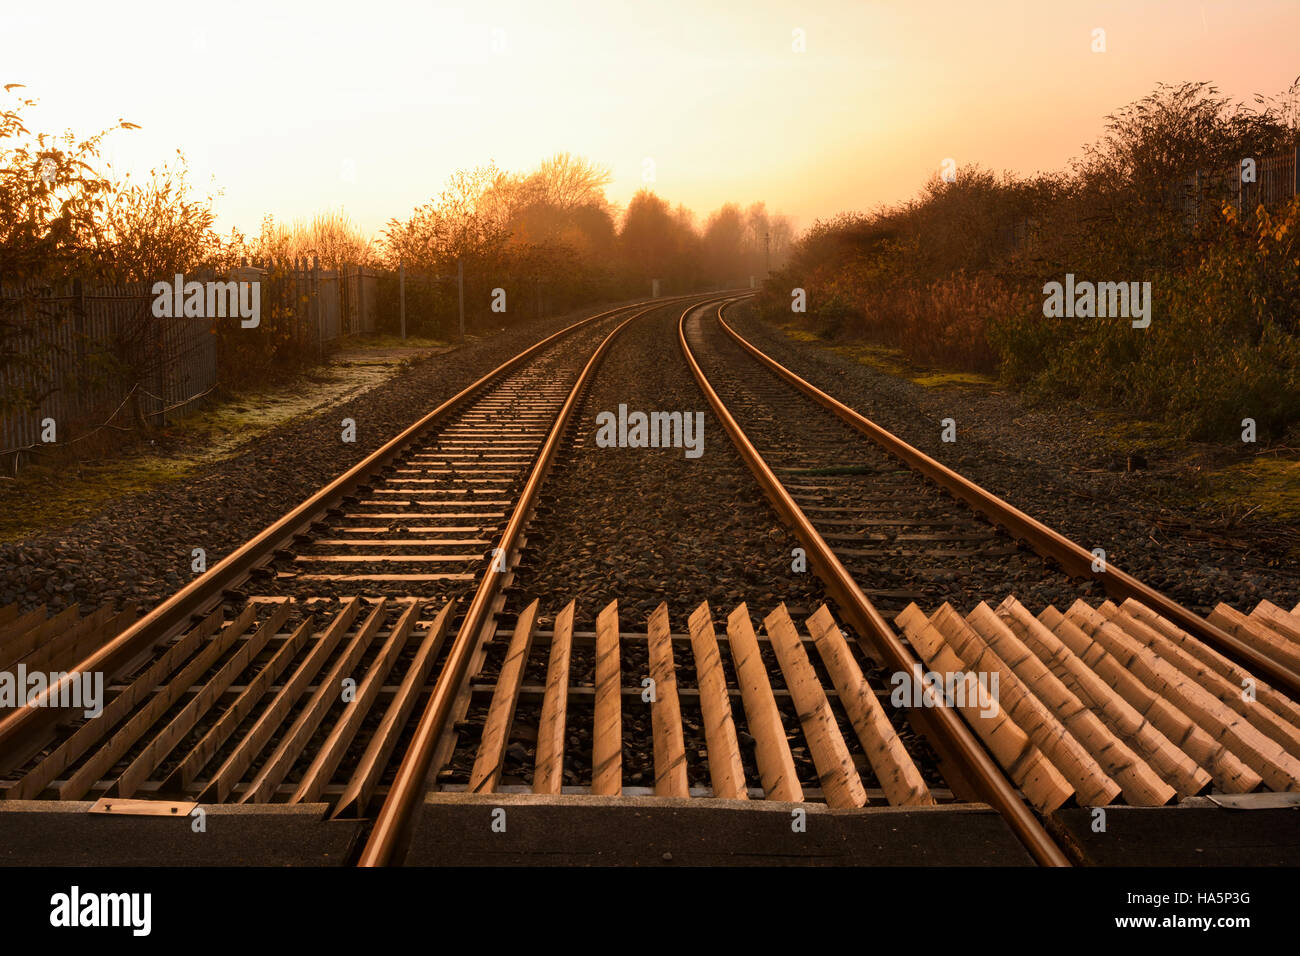 Railway lines curving off into the mist. - Stock Image